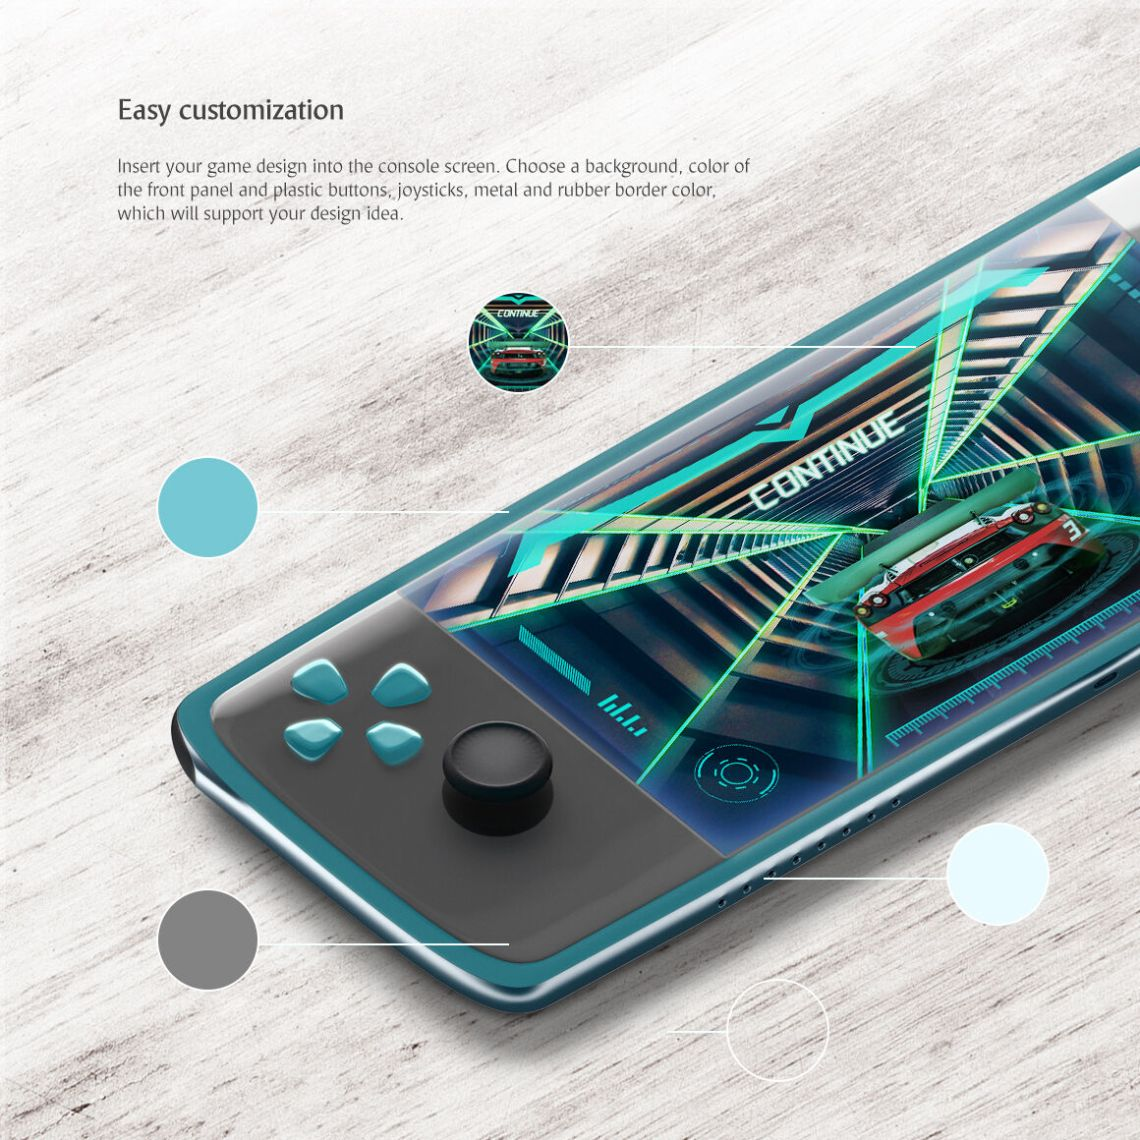 Download Game Mockup Psd Yellowimages